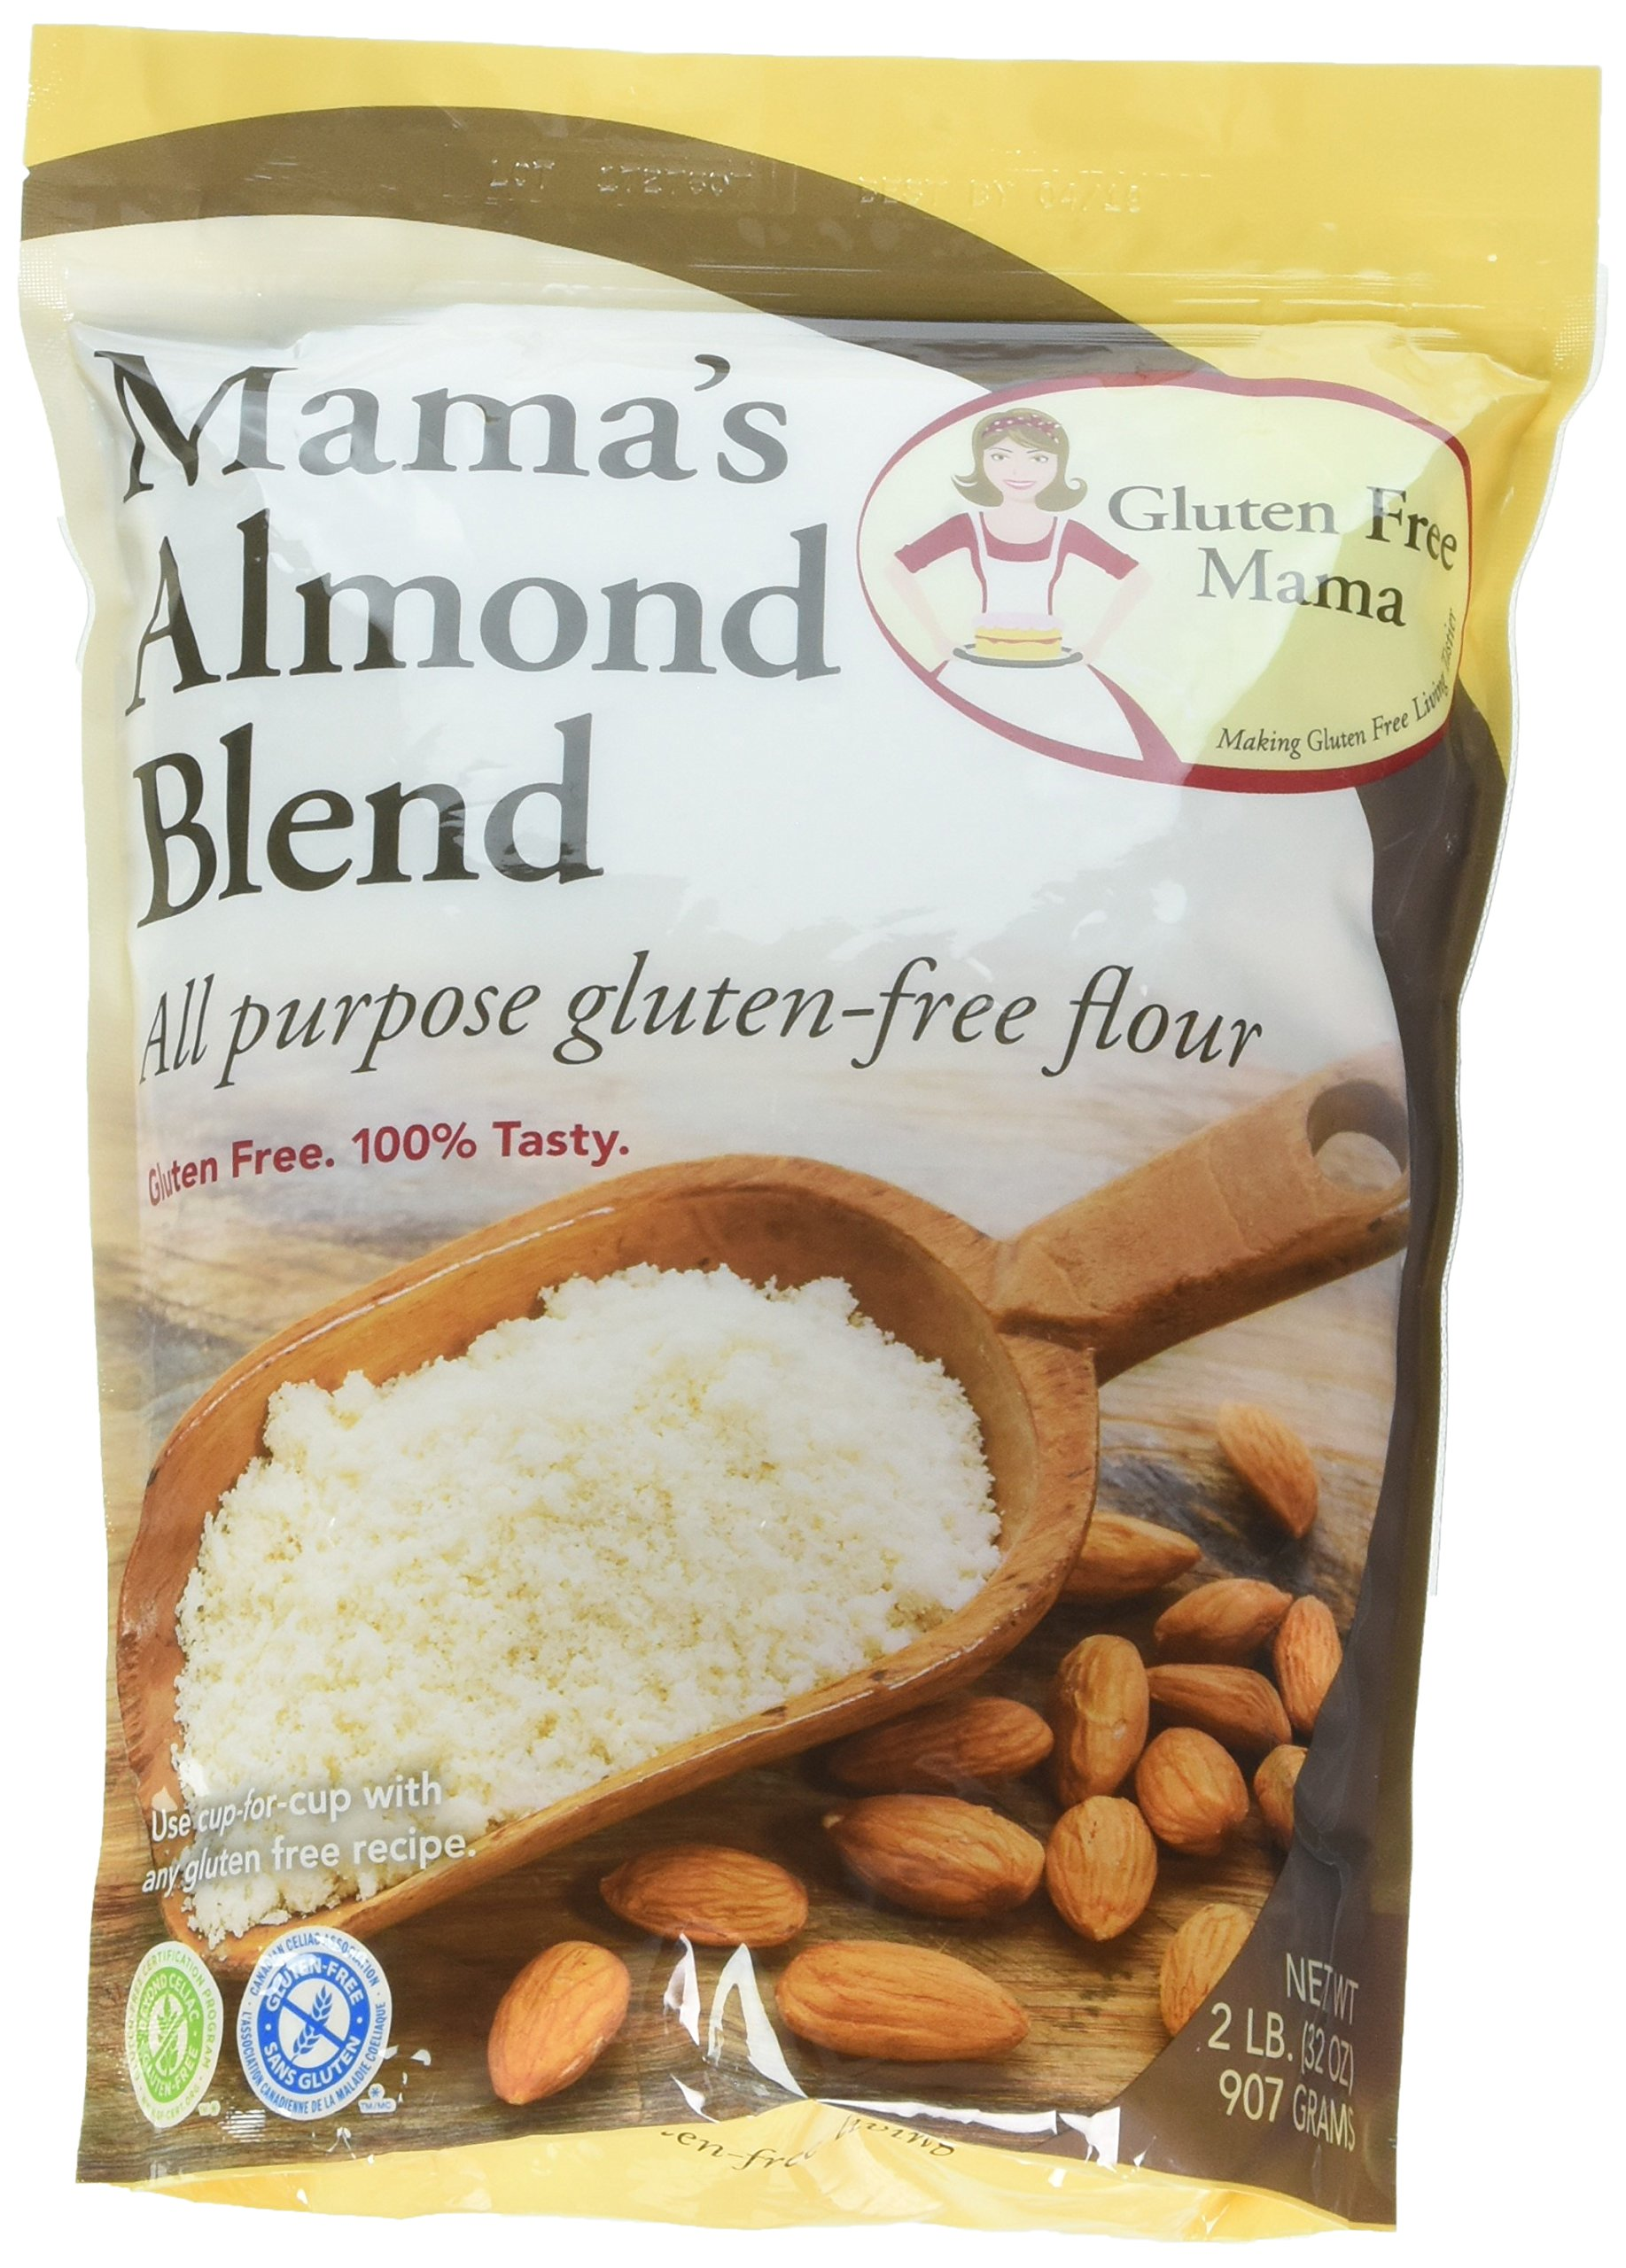 Gluten Free Mama's Almond Blend All Purpose Gluten-Free Flour 2 Packs 2 LB 100% Tasty Cup for Cup any Gluten free recipe. 100 Calories per serving